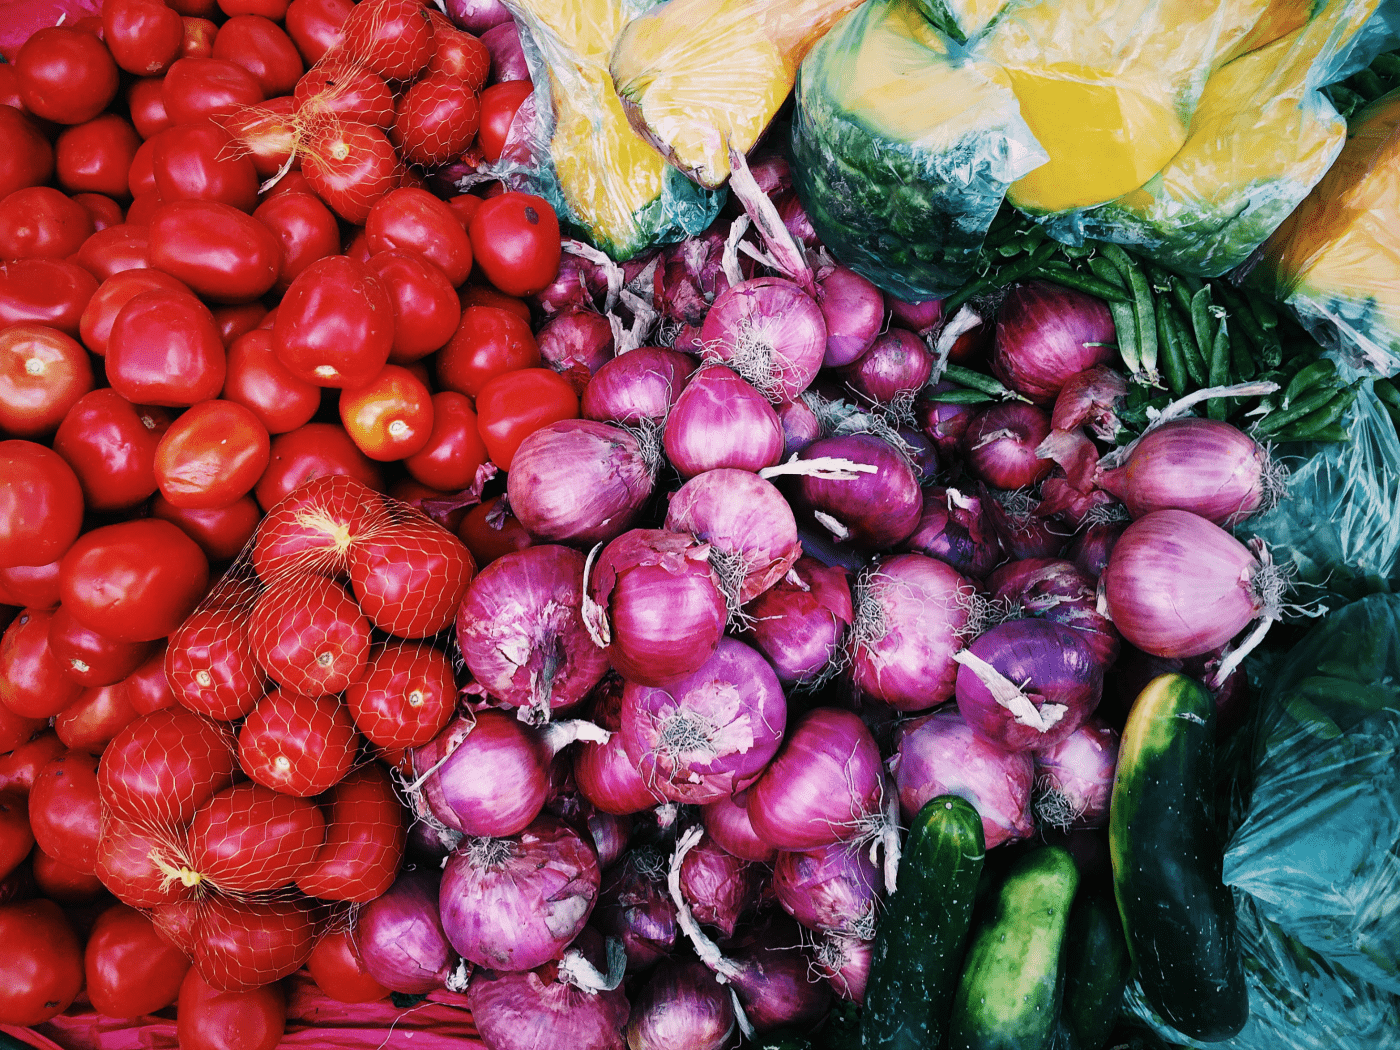 Colorful vegetables to help you learn how to eat more whole foods.